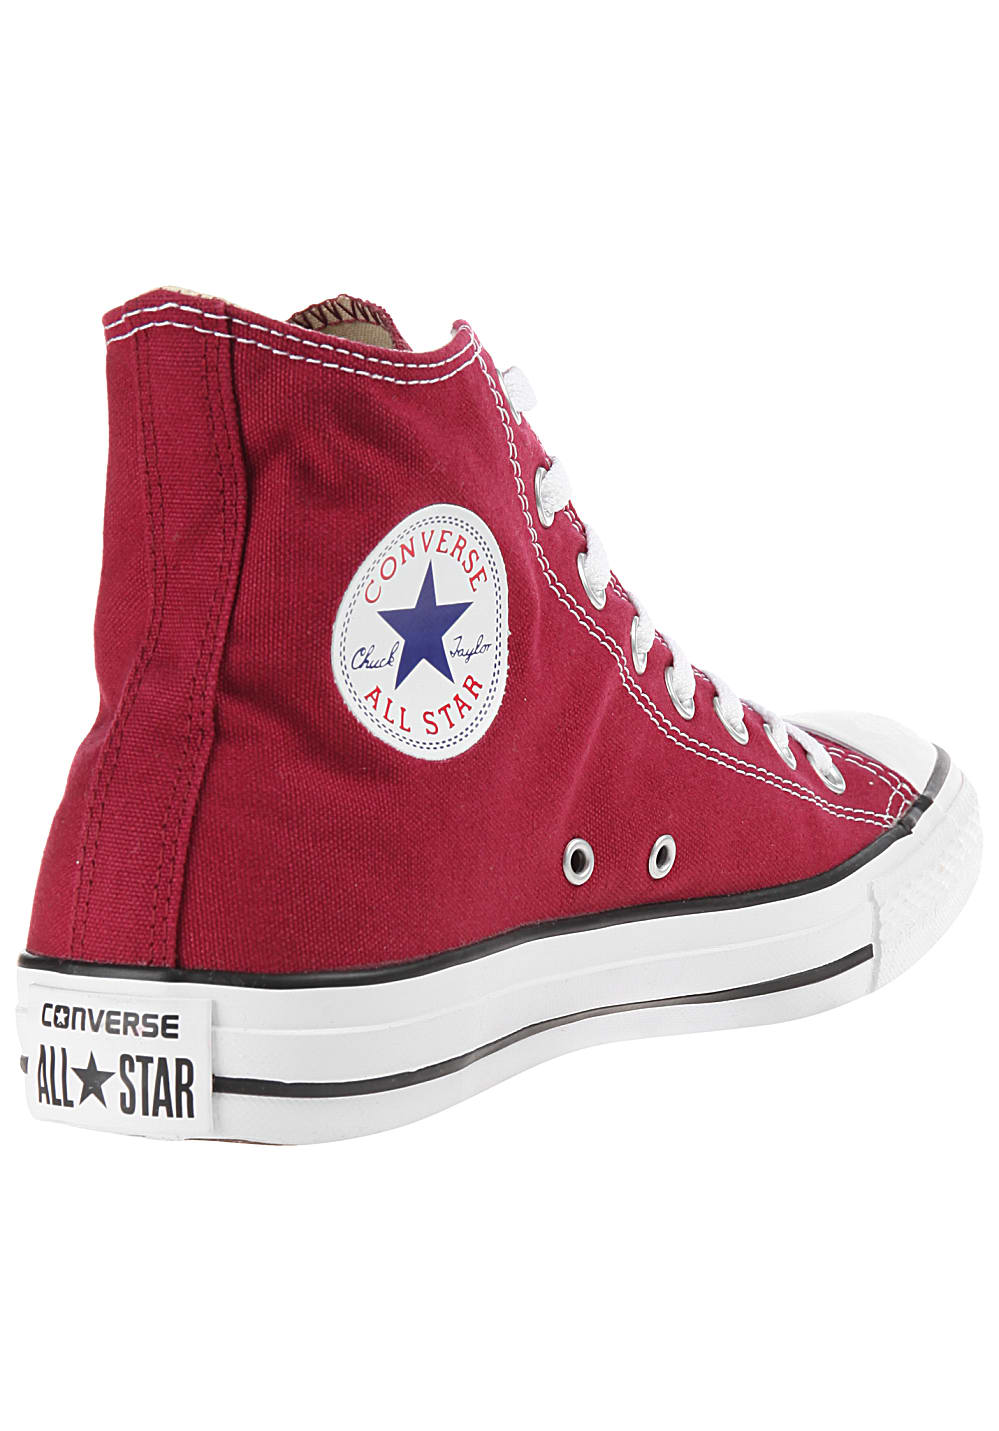 Converse All Star Hi - Sneaker - Rot